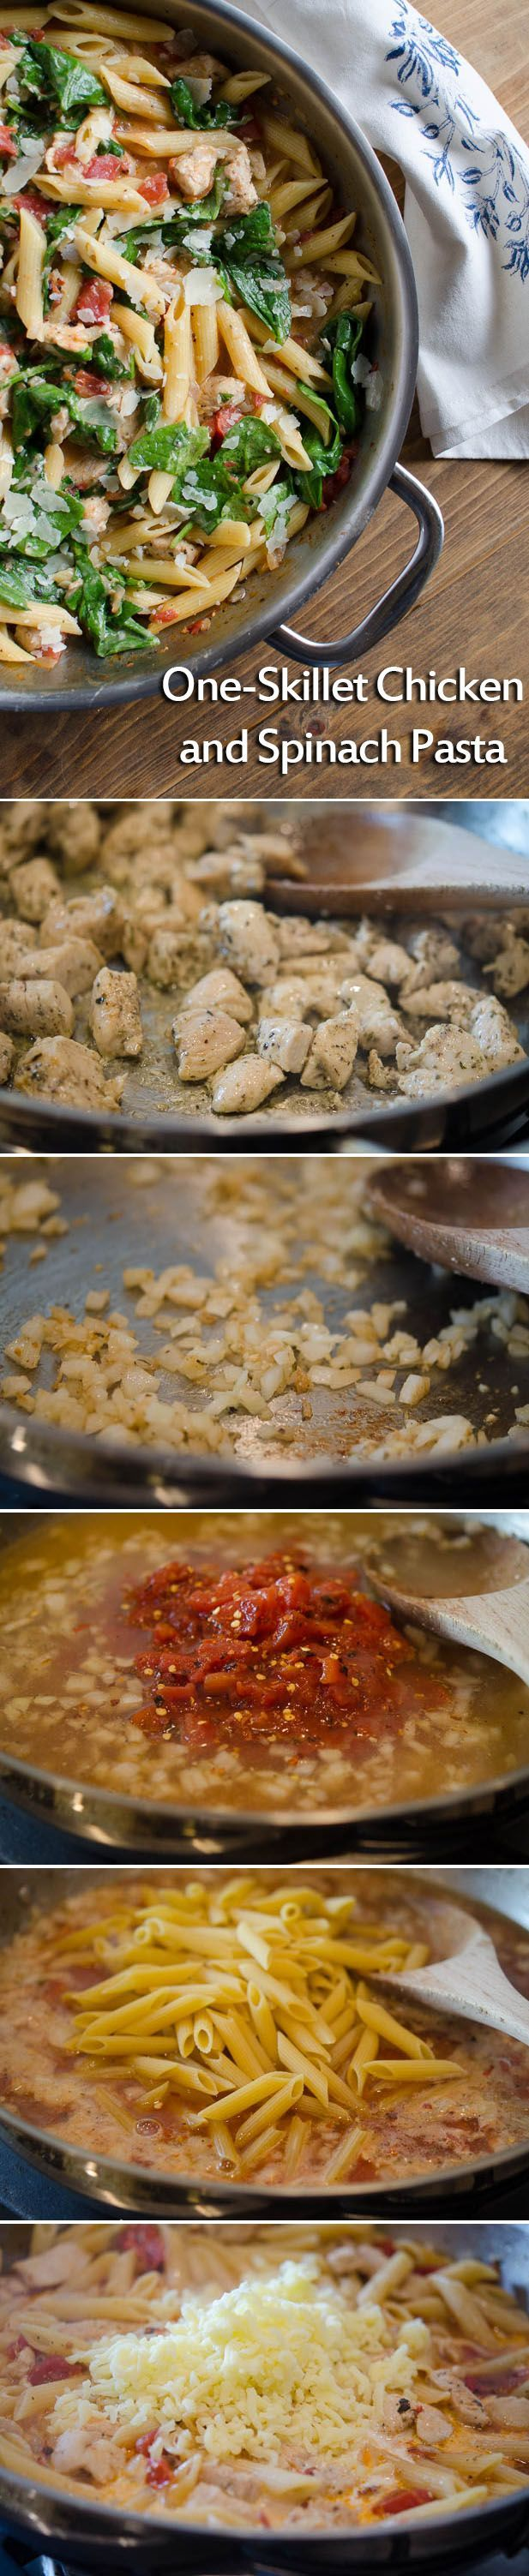 A quick, healthy dinner so full of flavor your whole family will love! One-pot meal makes the process super simple and the clean-up even easier. Recipe: www.ehow.com/...